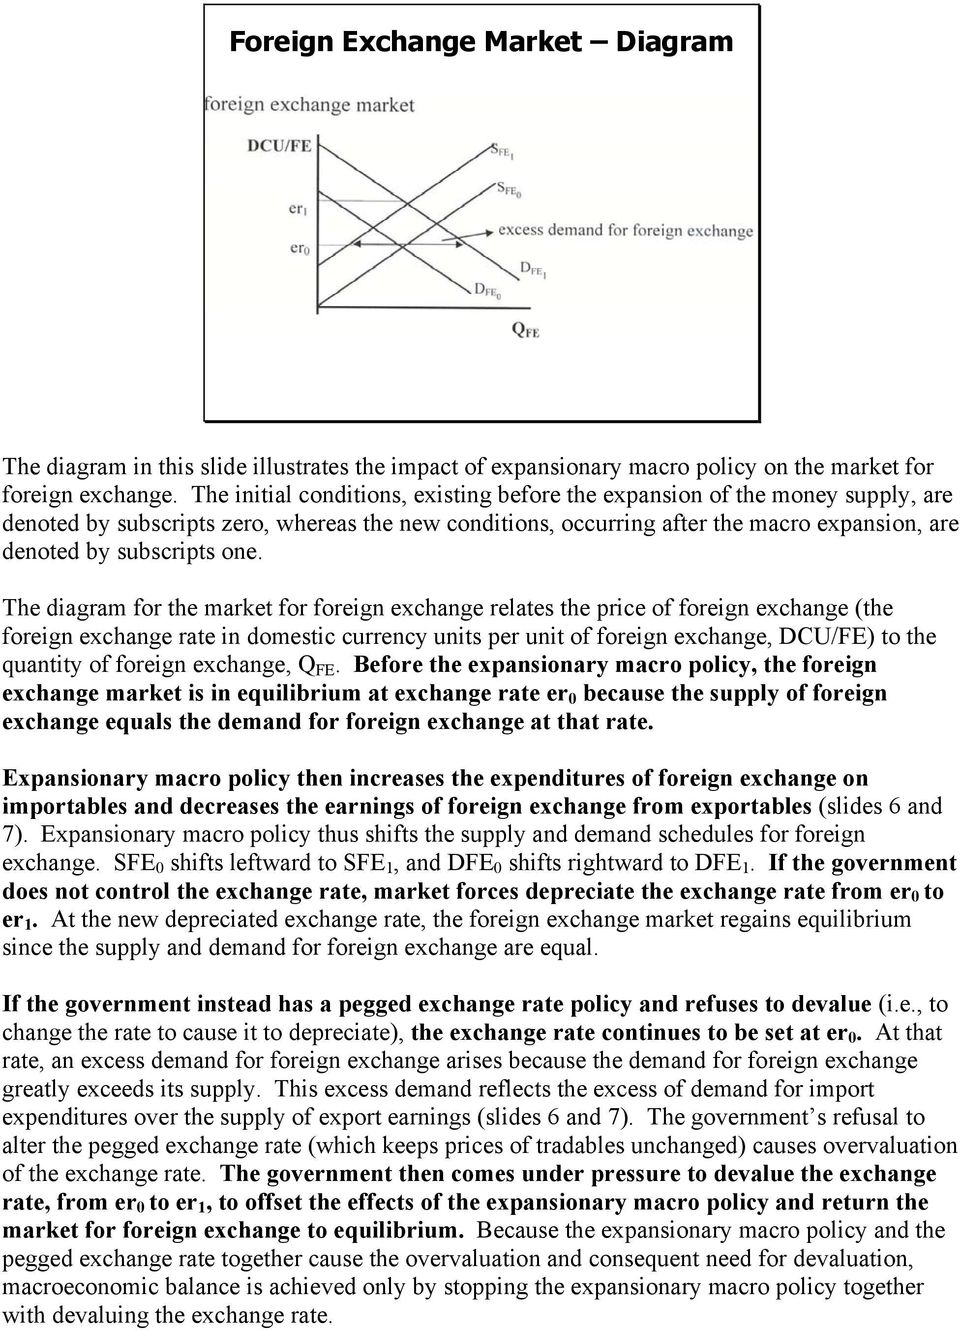 one. The diagram for the market for foreign exchange relates the price of foreign exchange (the foreign exchange rate in domestic currency units per unit of foreign exchange, DCU/FE) to the quantity